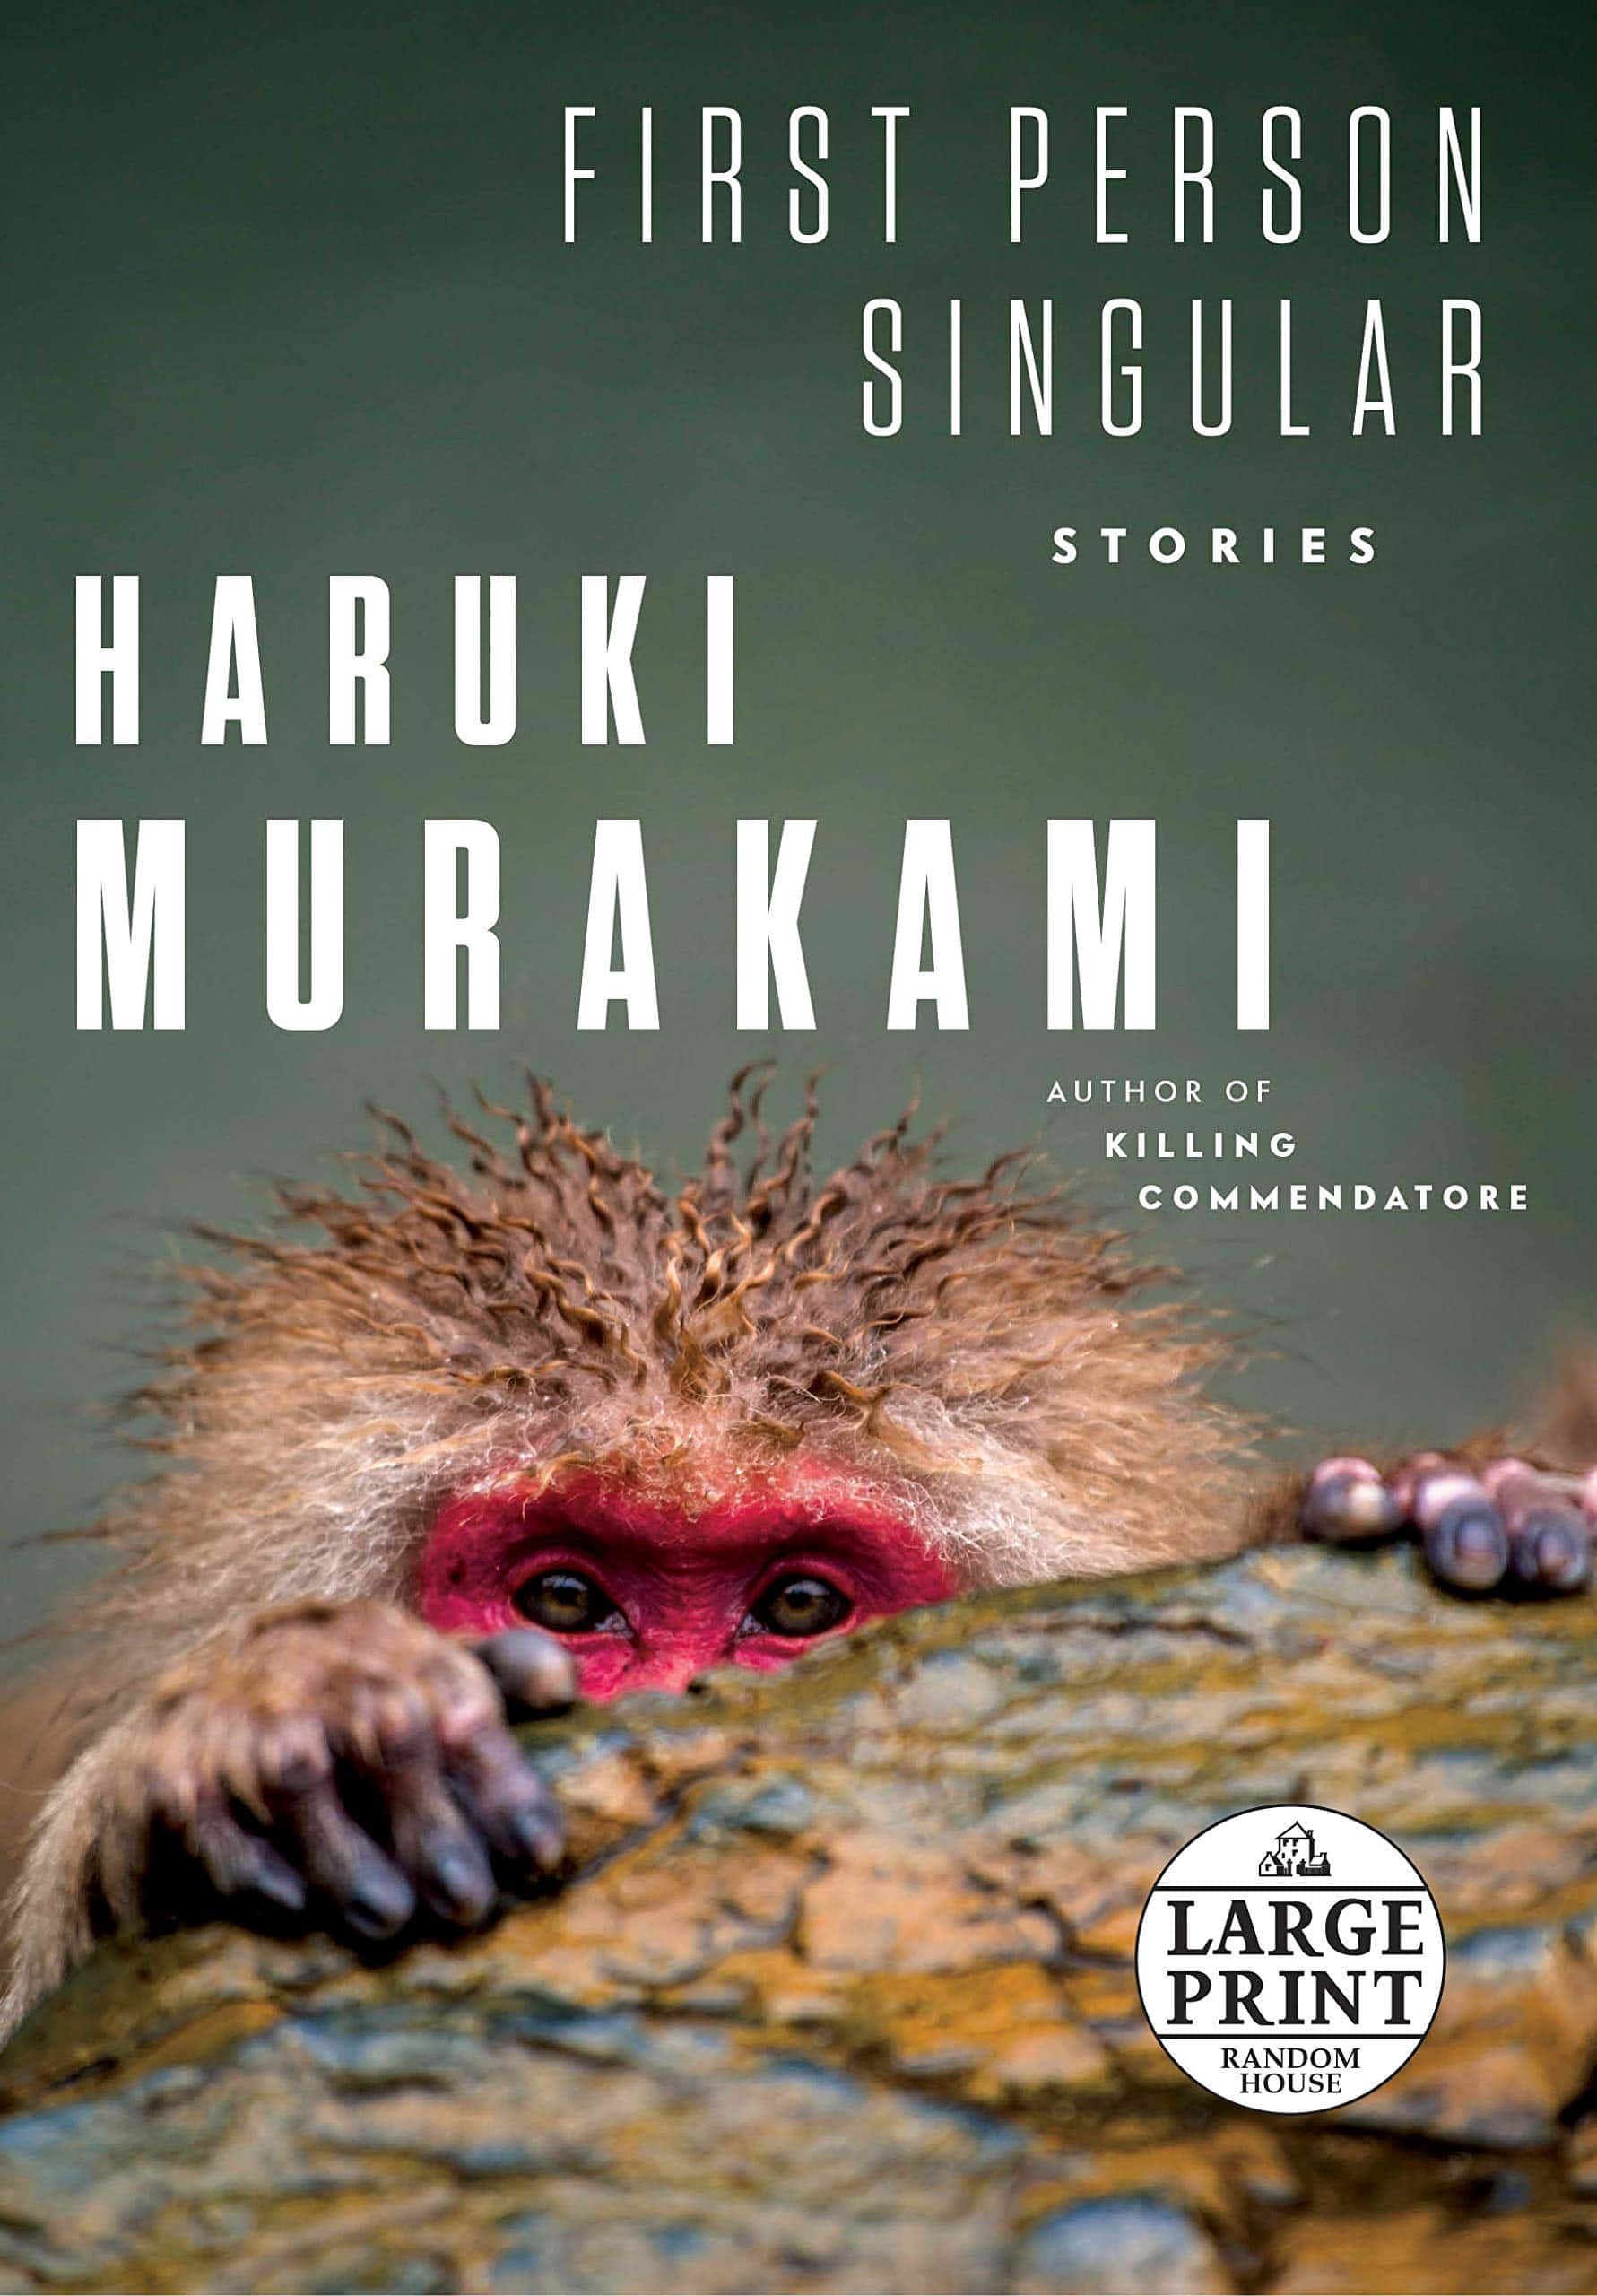 photo-based book cover example as a 2021 trend